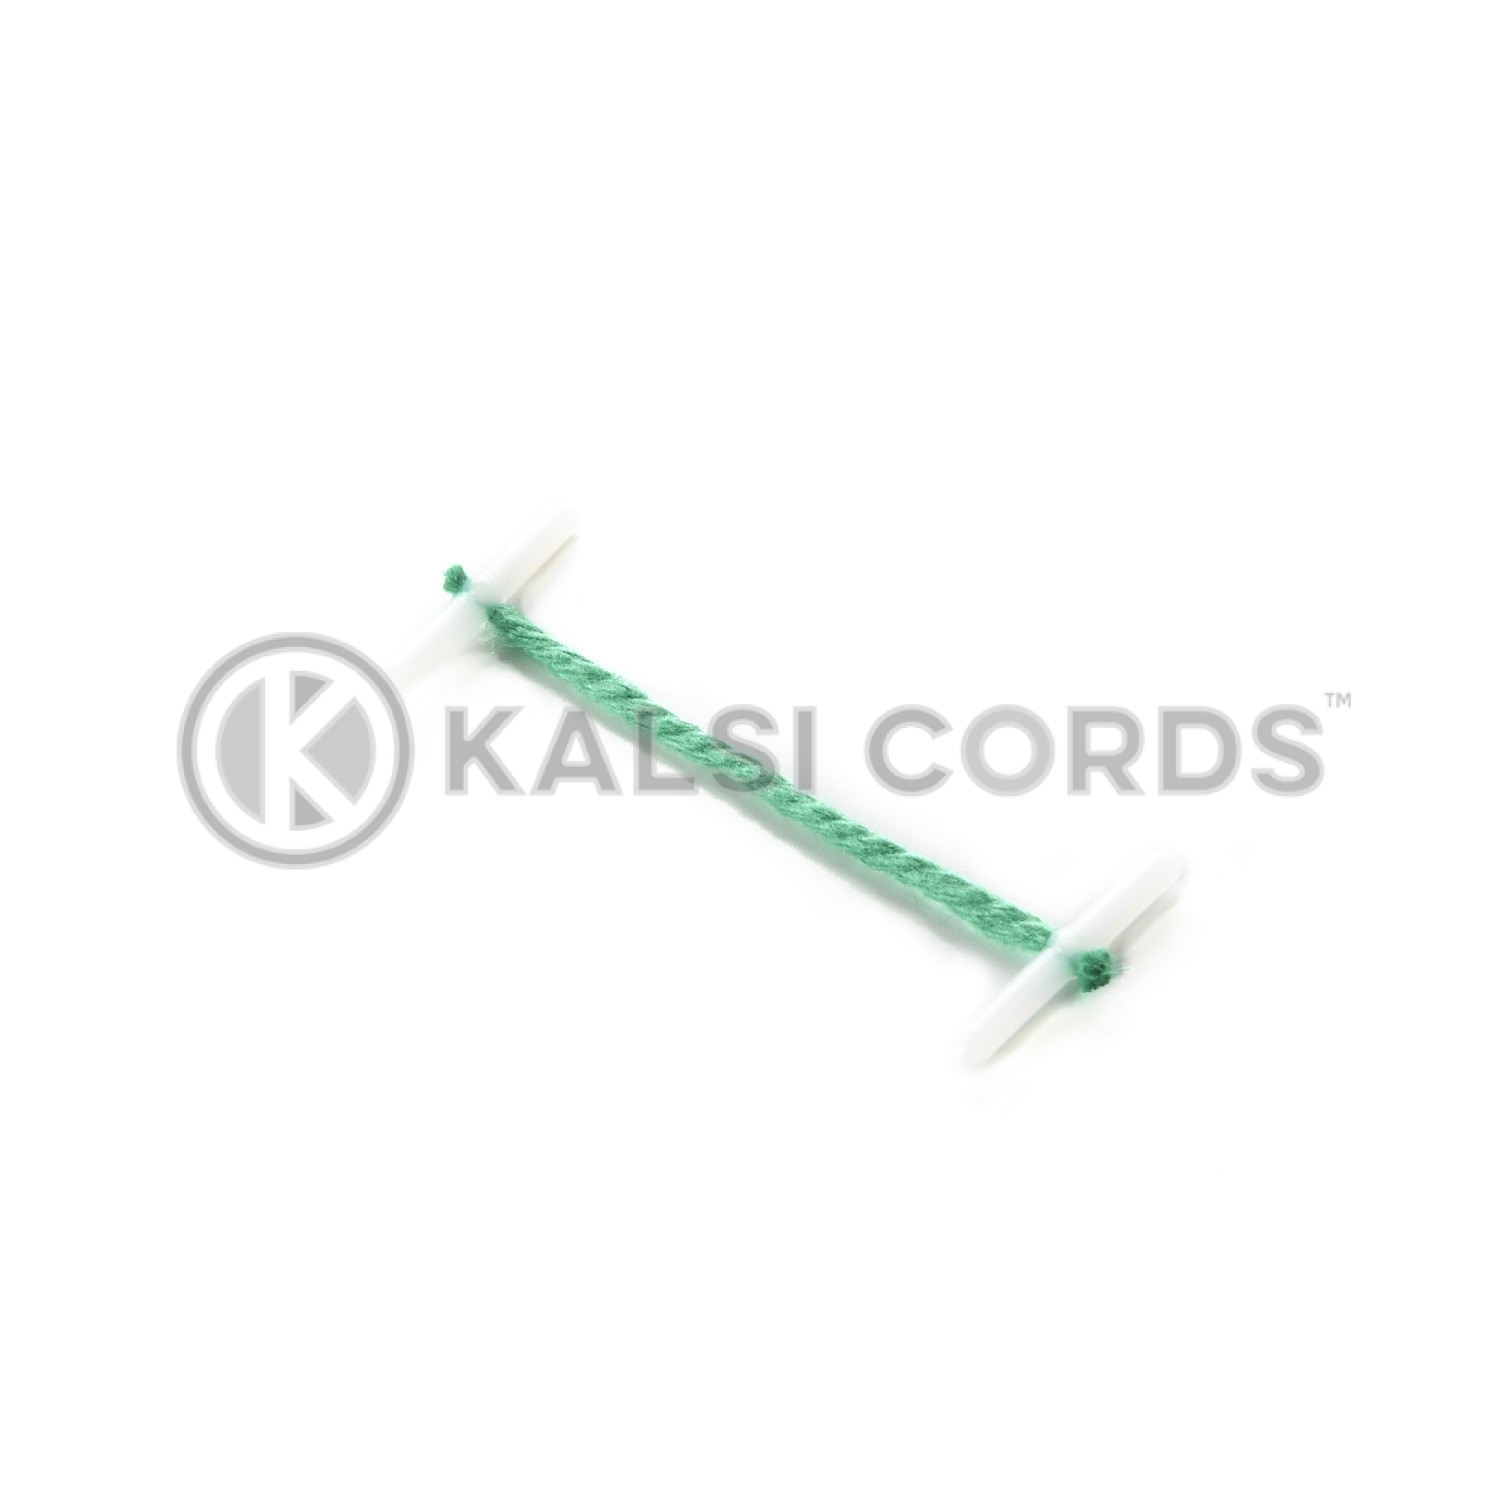 2 Inch 51mm Green Plastic Treasury Tags Cotton T Bar Paper Fasteners Bind Paper Documents Alternative Paper Clips Staples Secure Hold Together Kalsi Cords